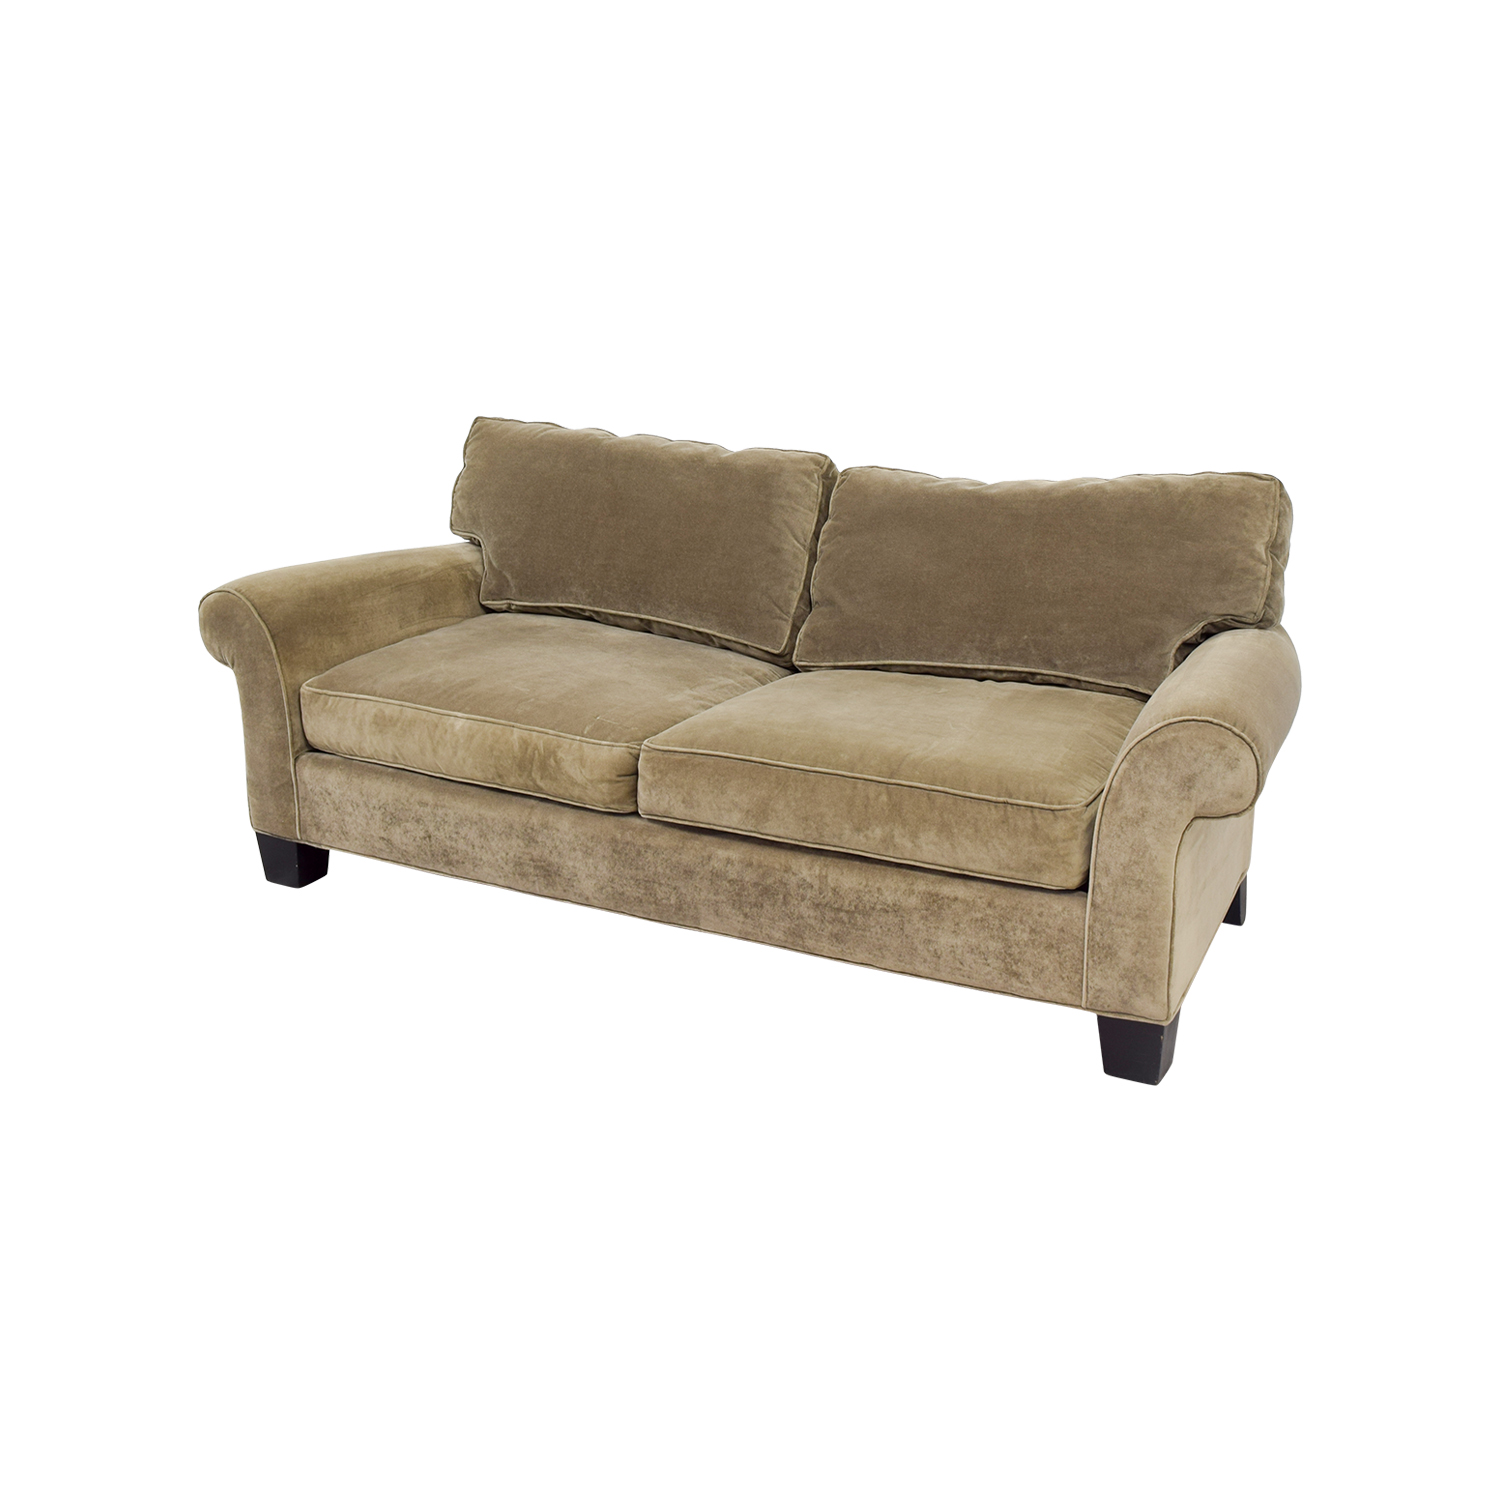 mitc gold and bob williams sofa 2 seater bed dimensions 70 off mitchell 43